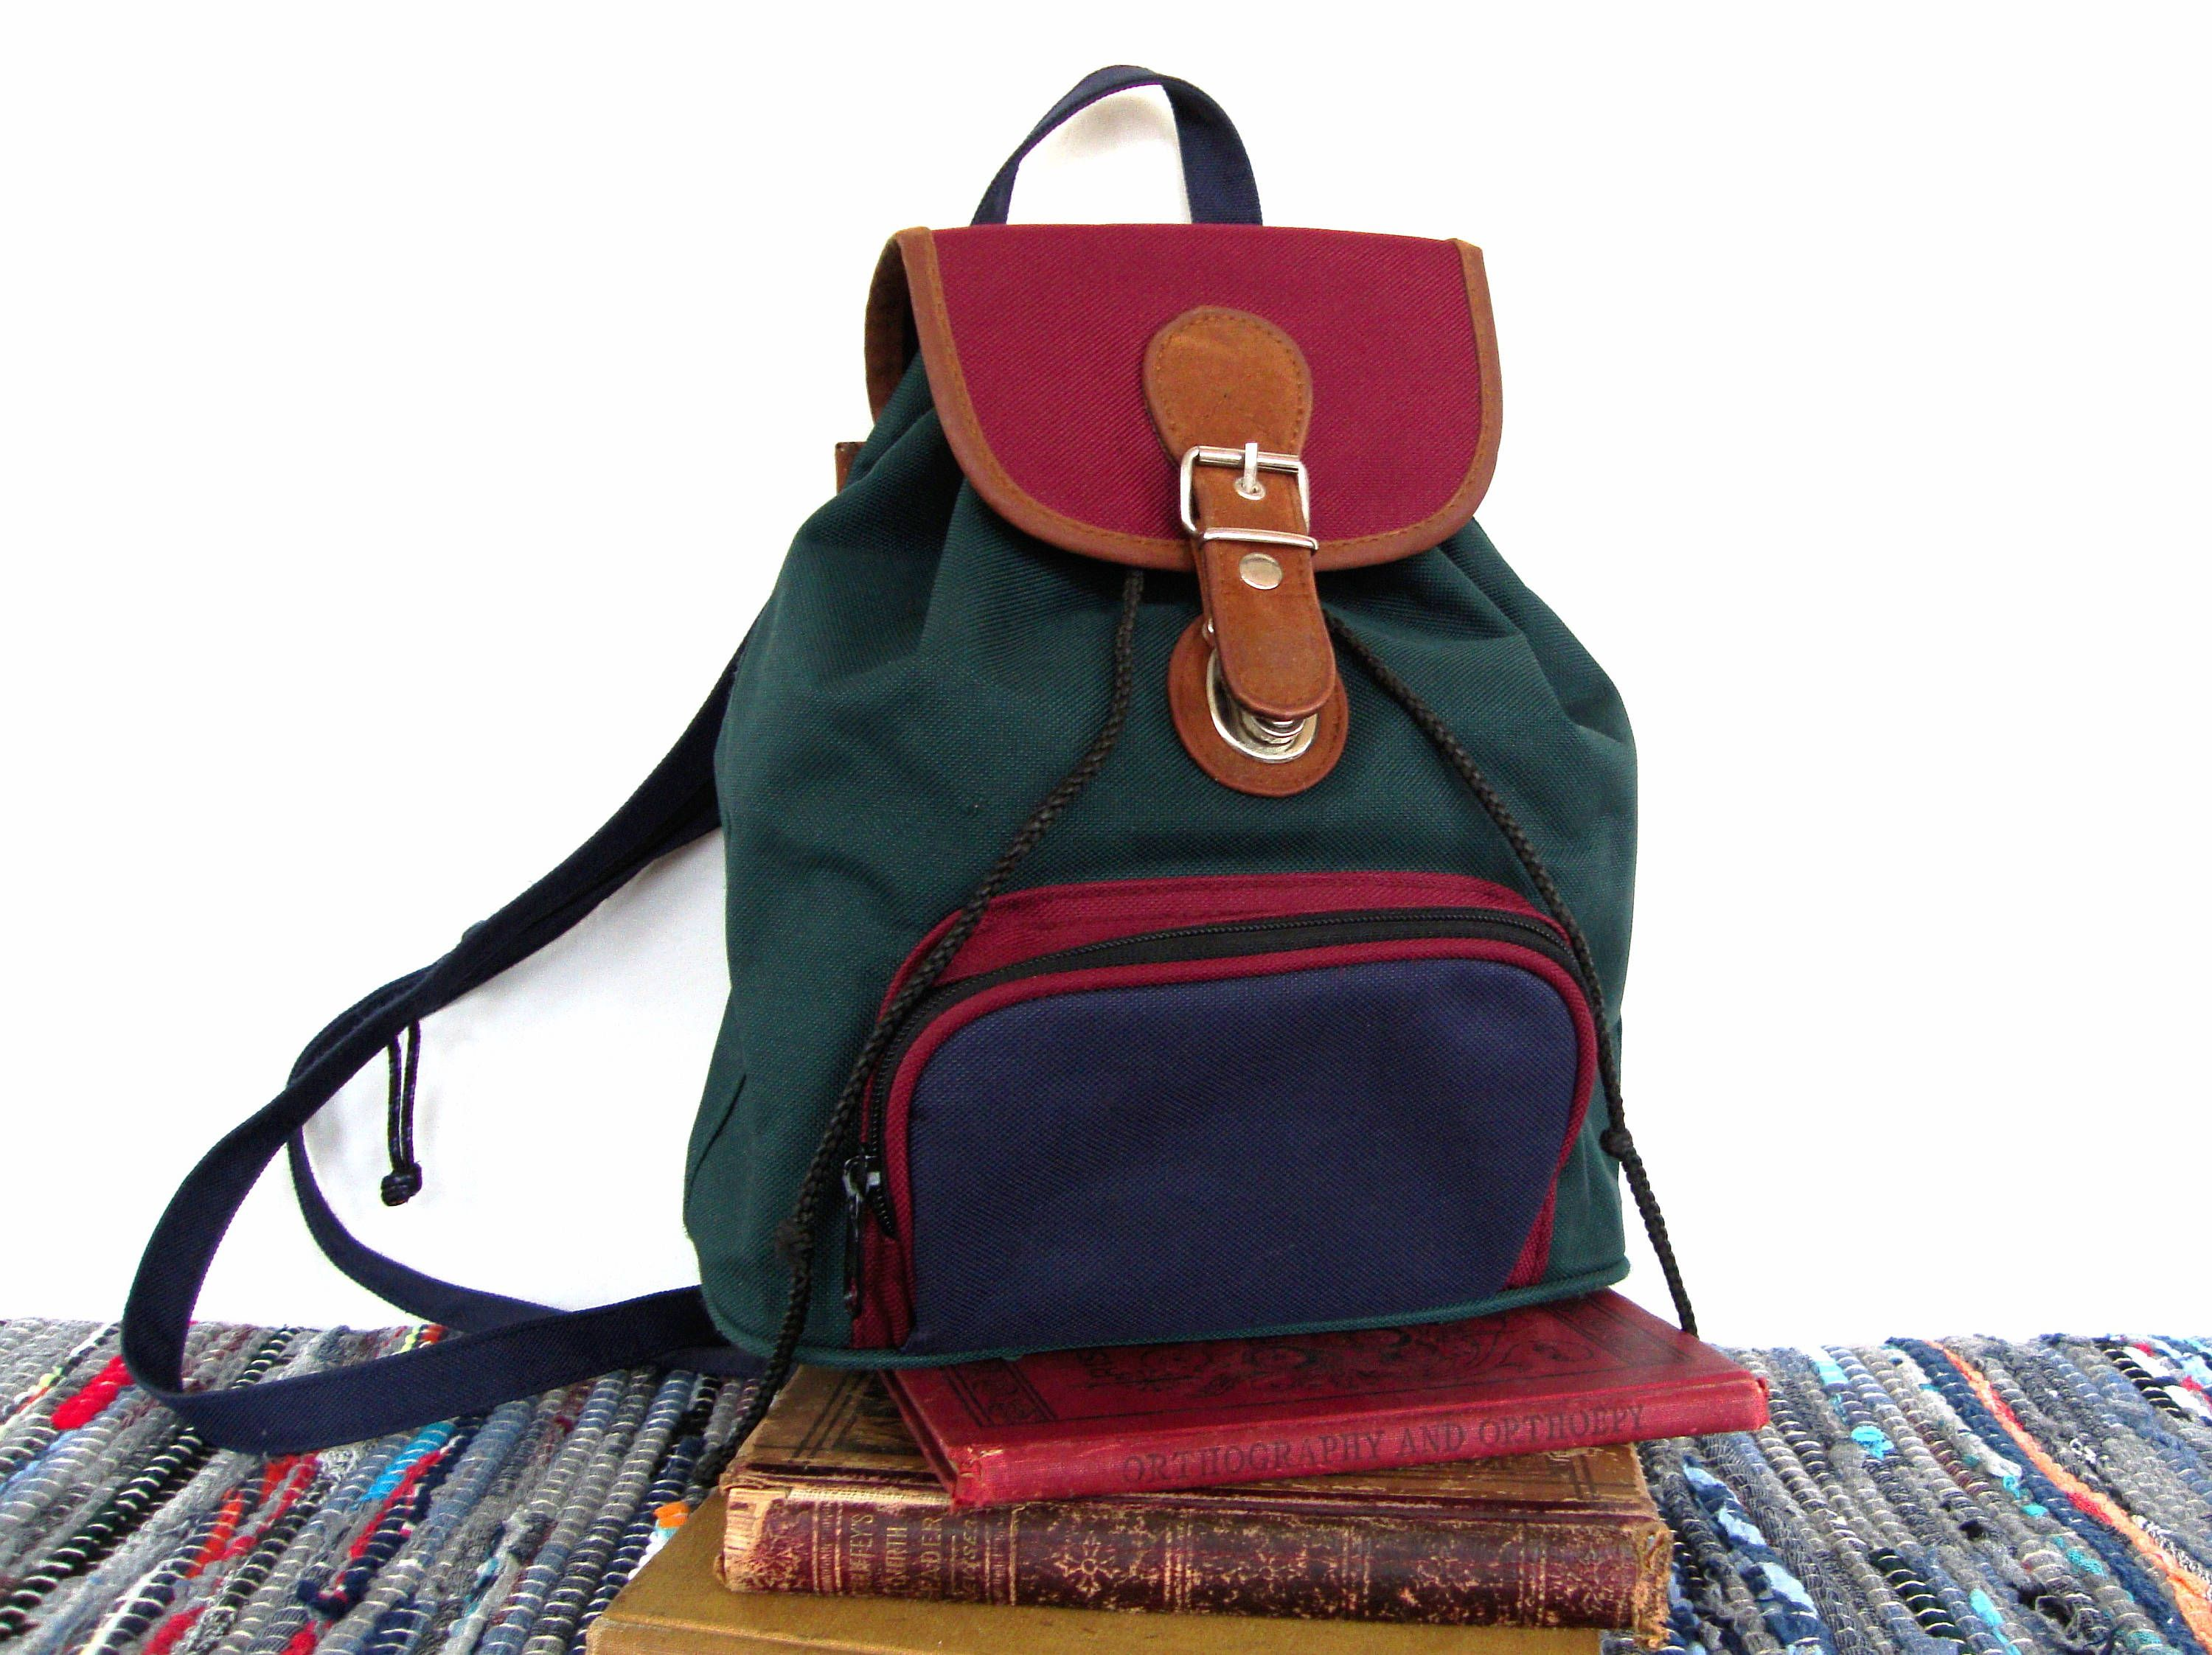 9797a383539 Vintage 90s Mini Backpack Purse Canvas Leather Miniature Book Bag 90s  Fashion Hunter green Blue and Burgundy by MODernThrowback on Etsy